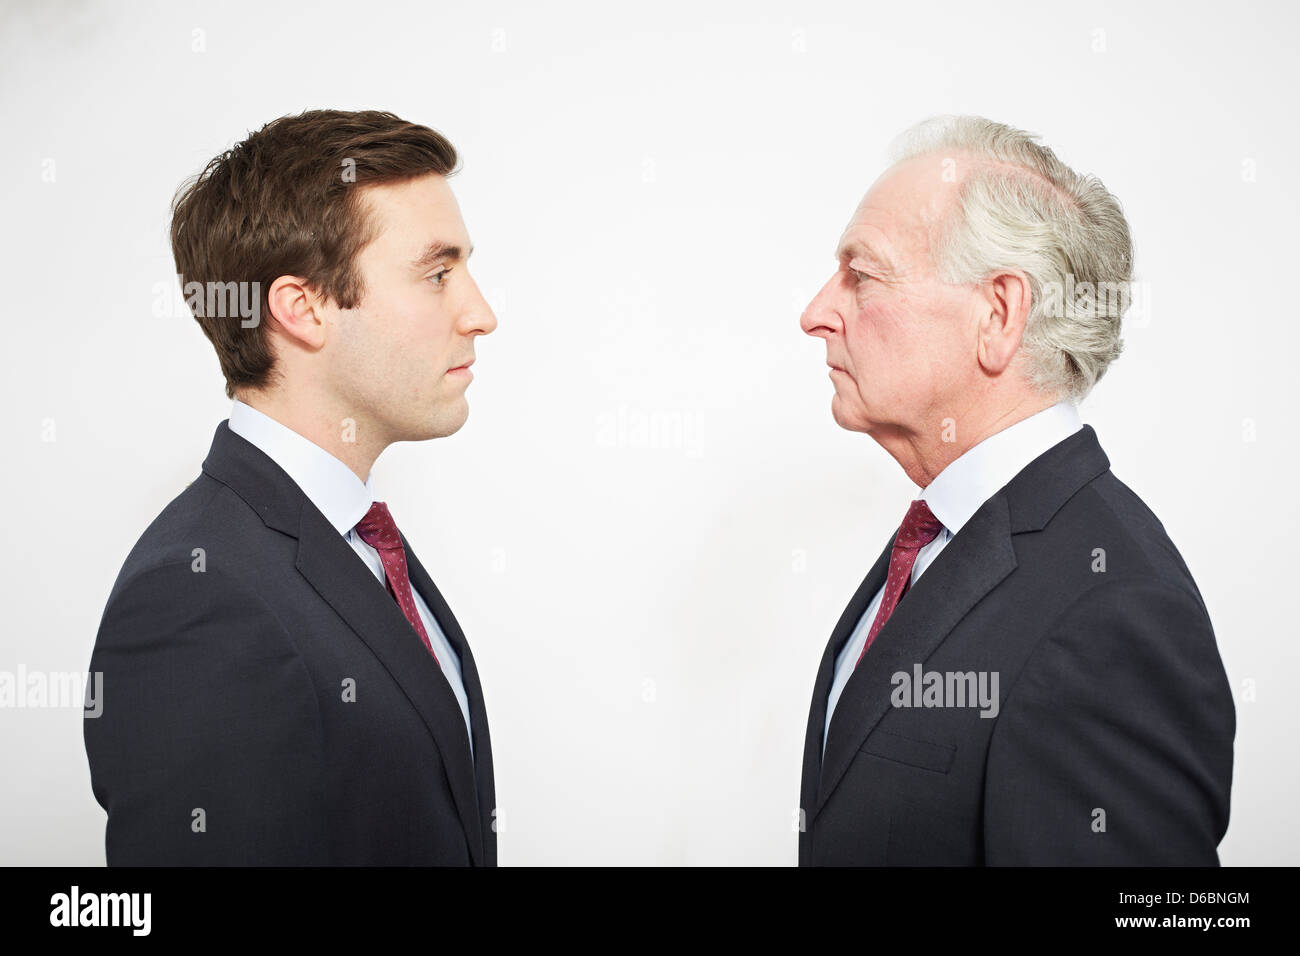 Businessmen facing each other - Stock Image